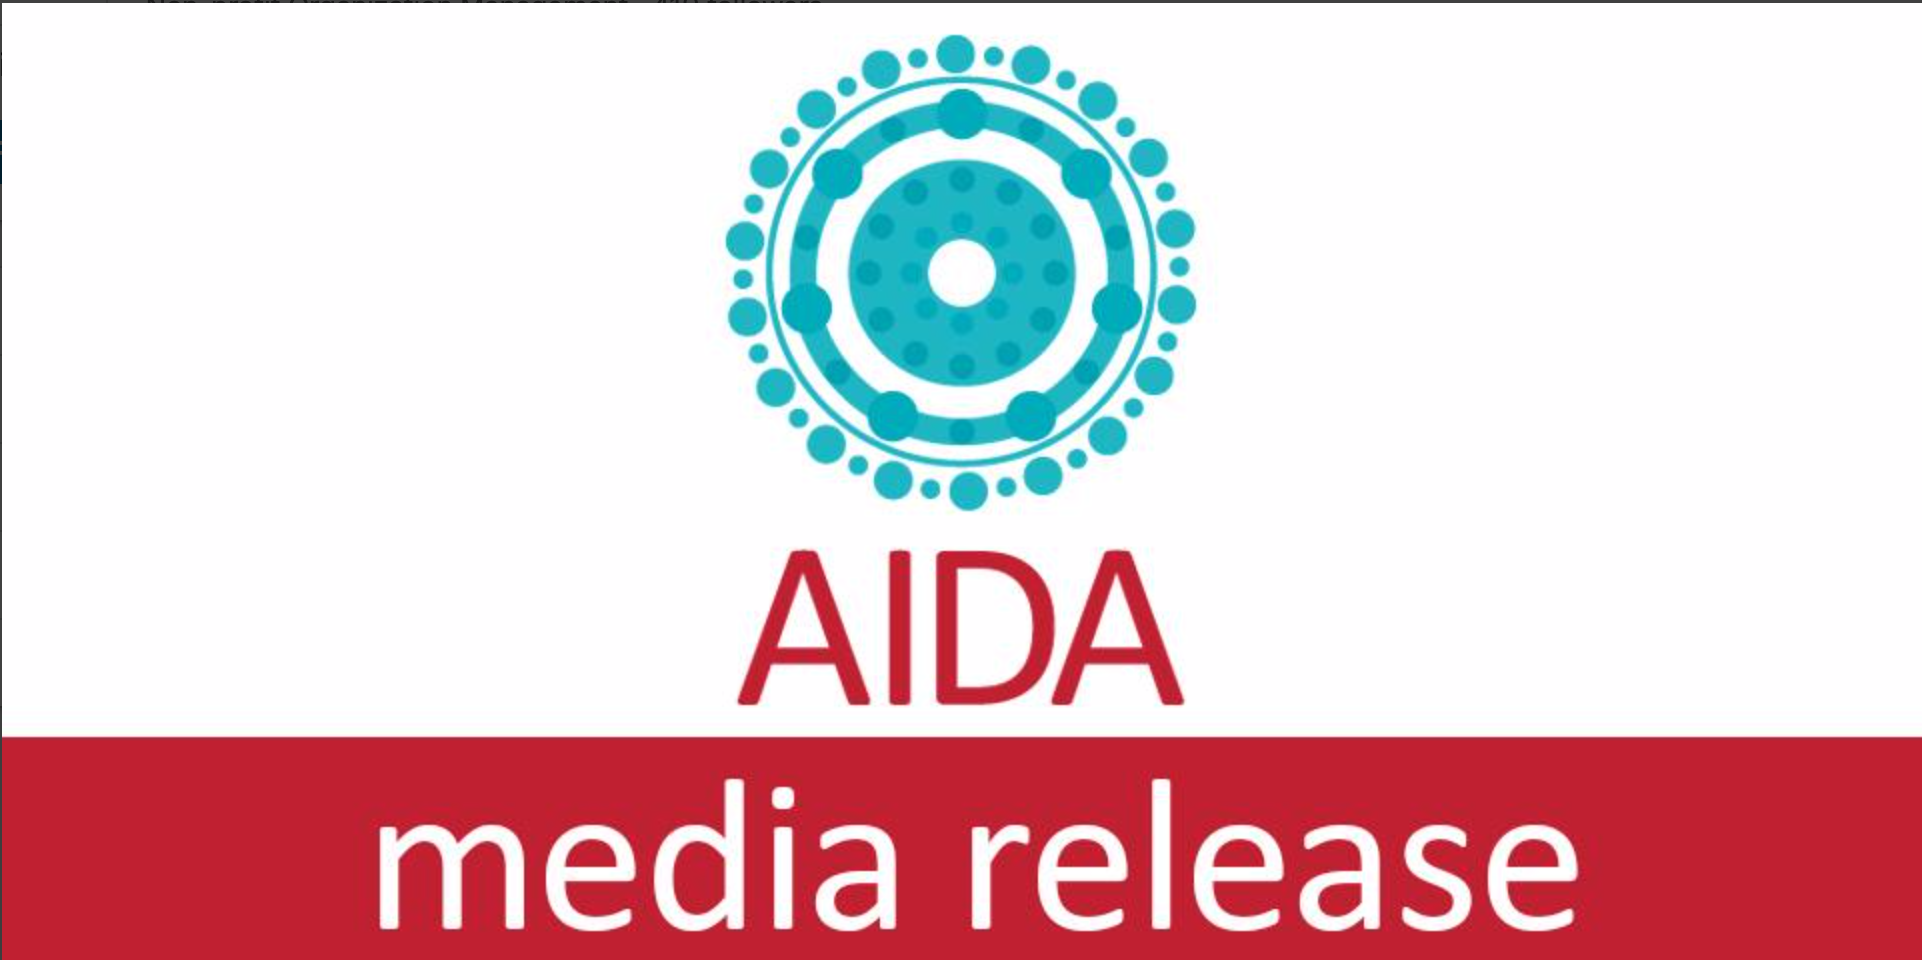 AIDA stands with the people of Yuendumu